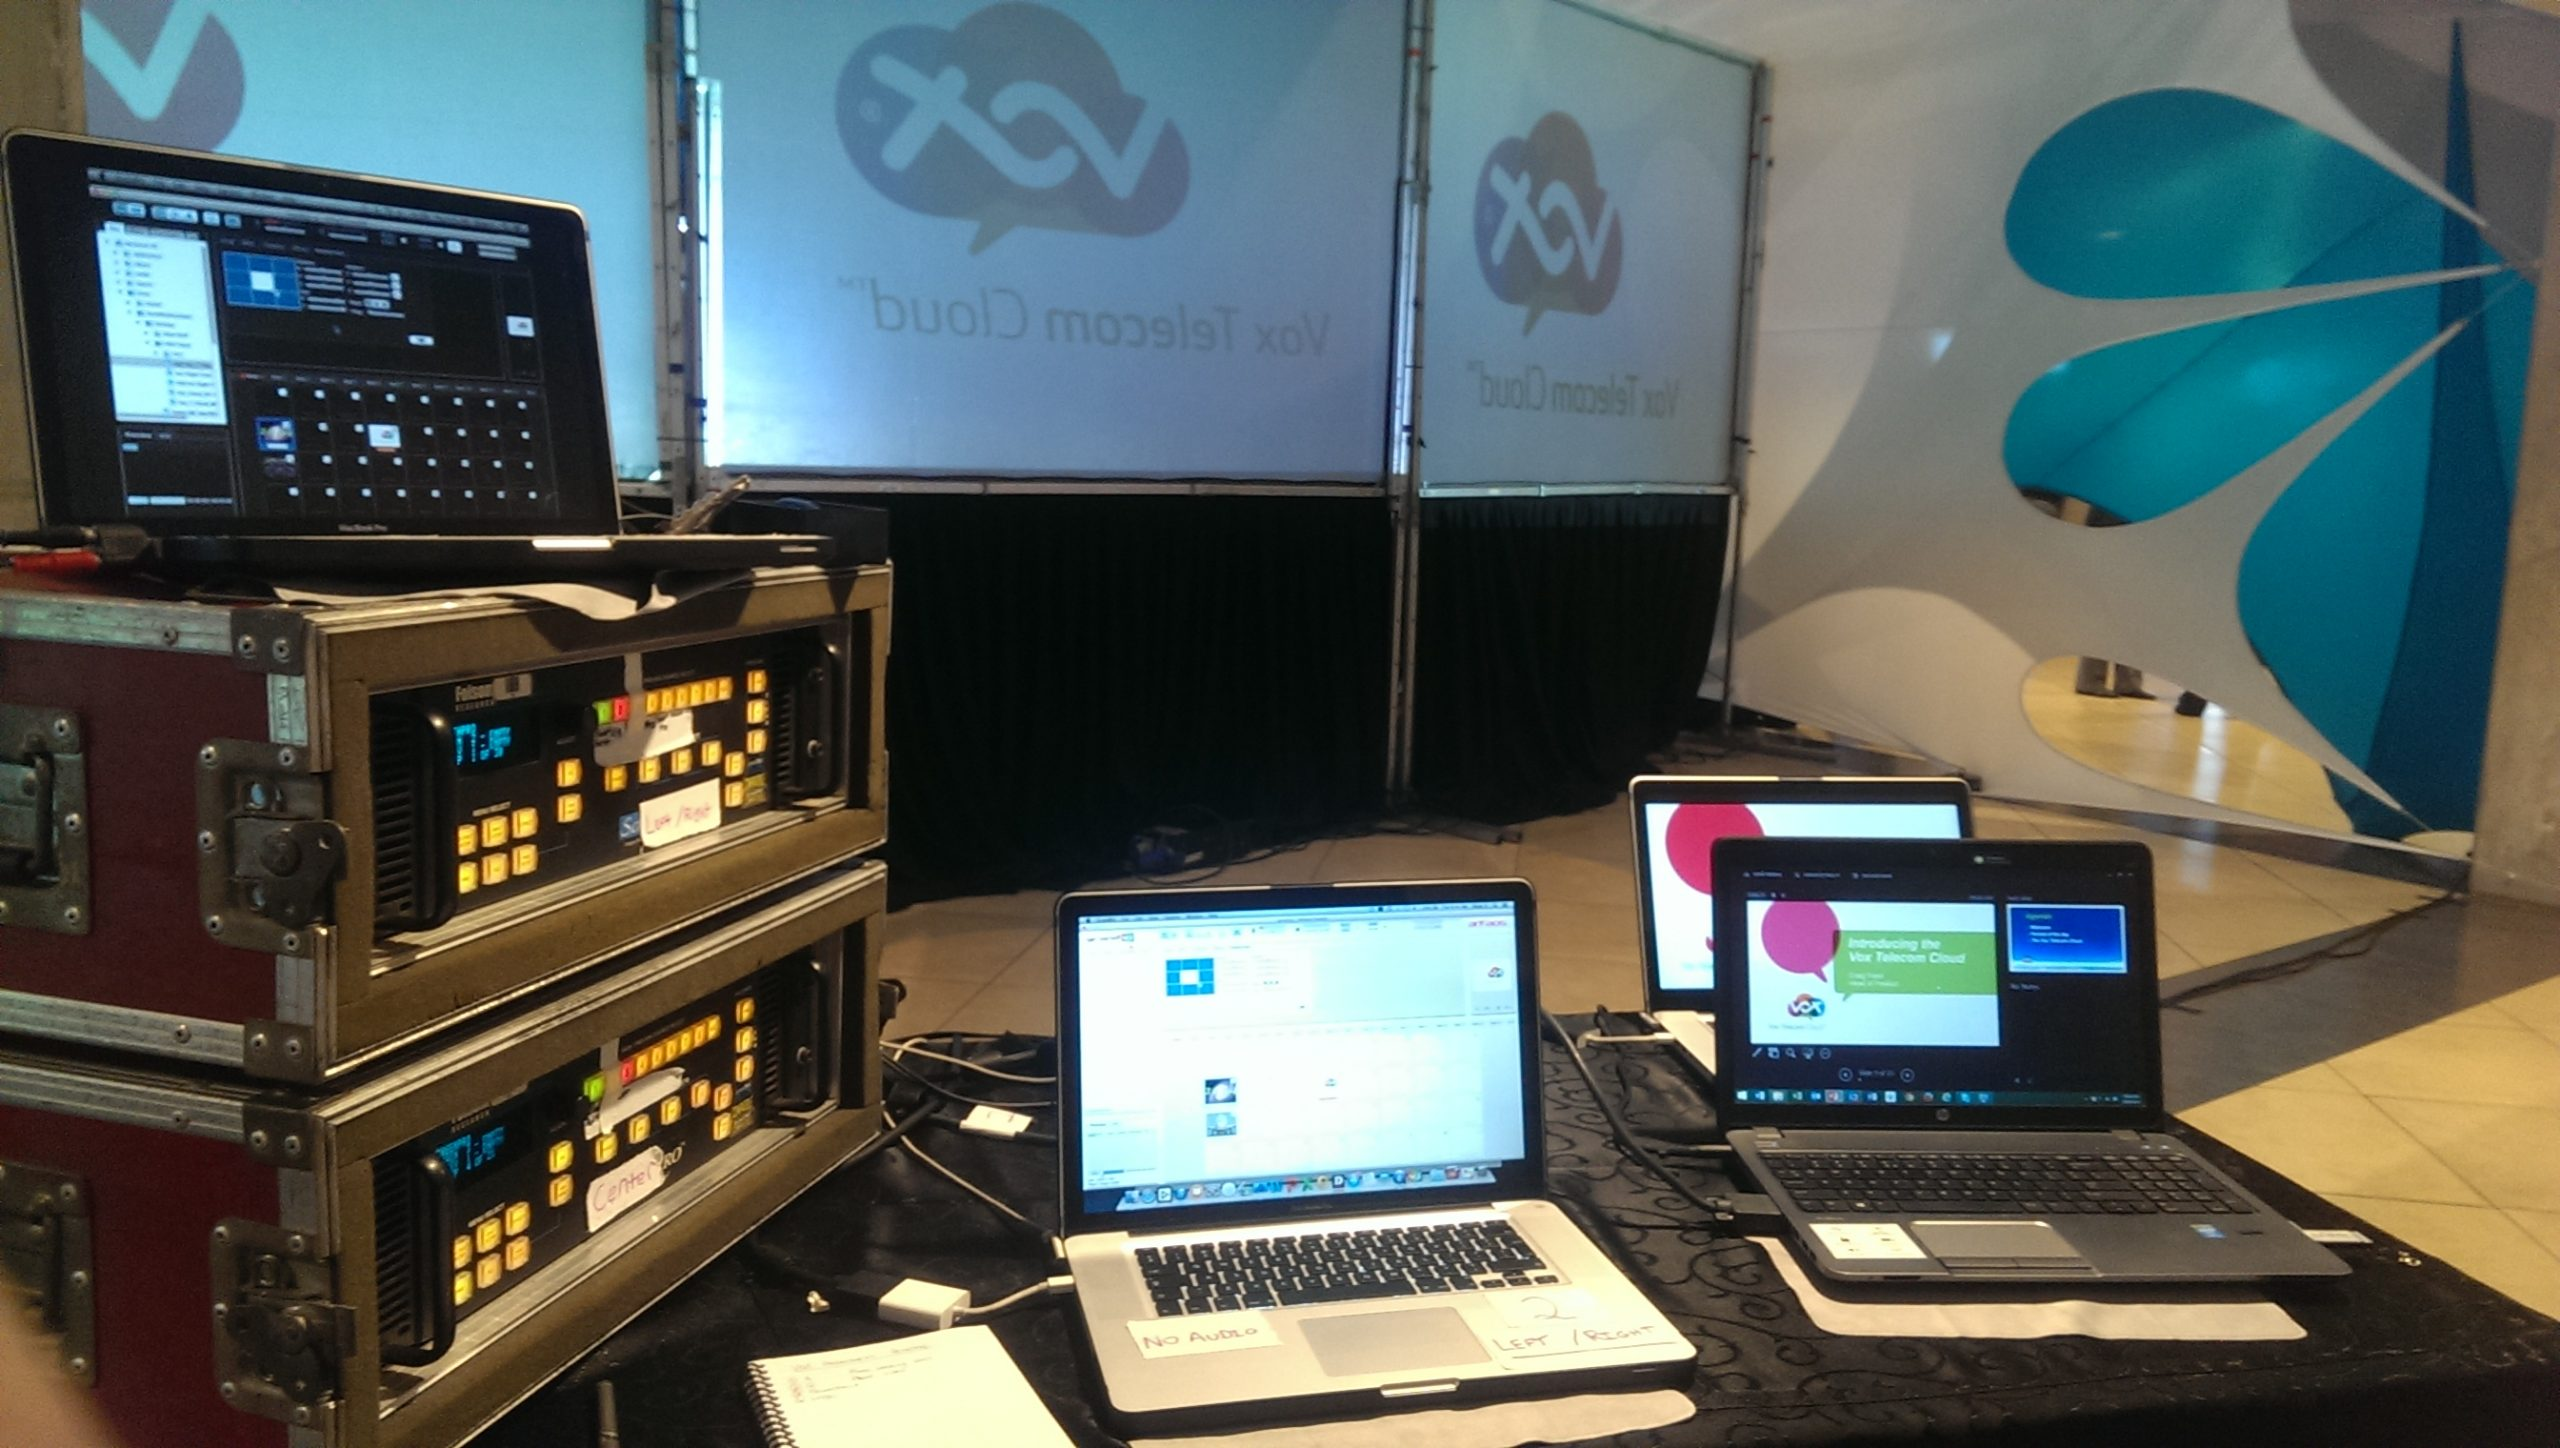 A photo from behind the scenes of live streaming